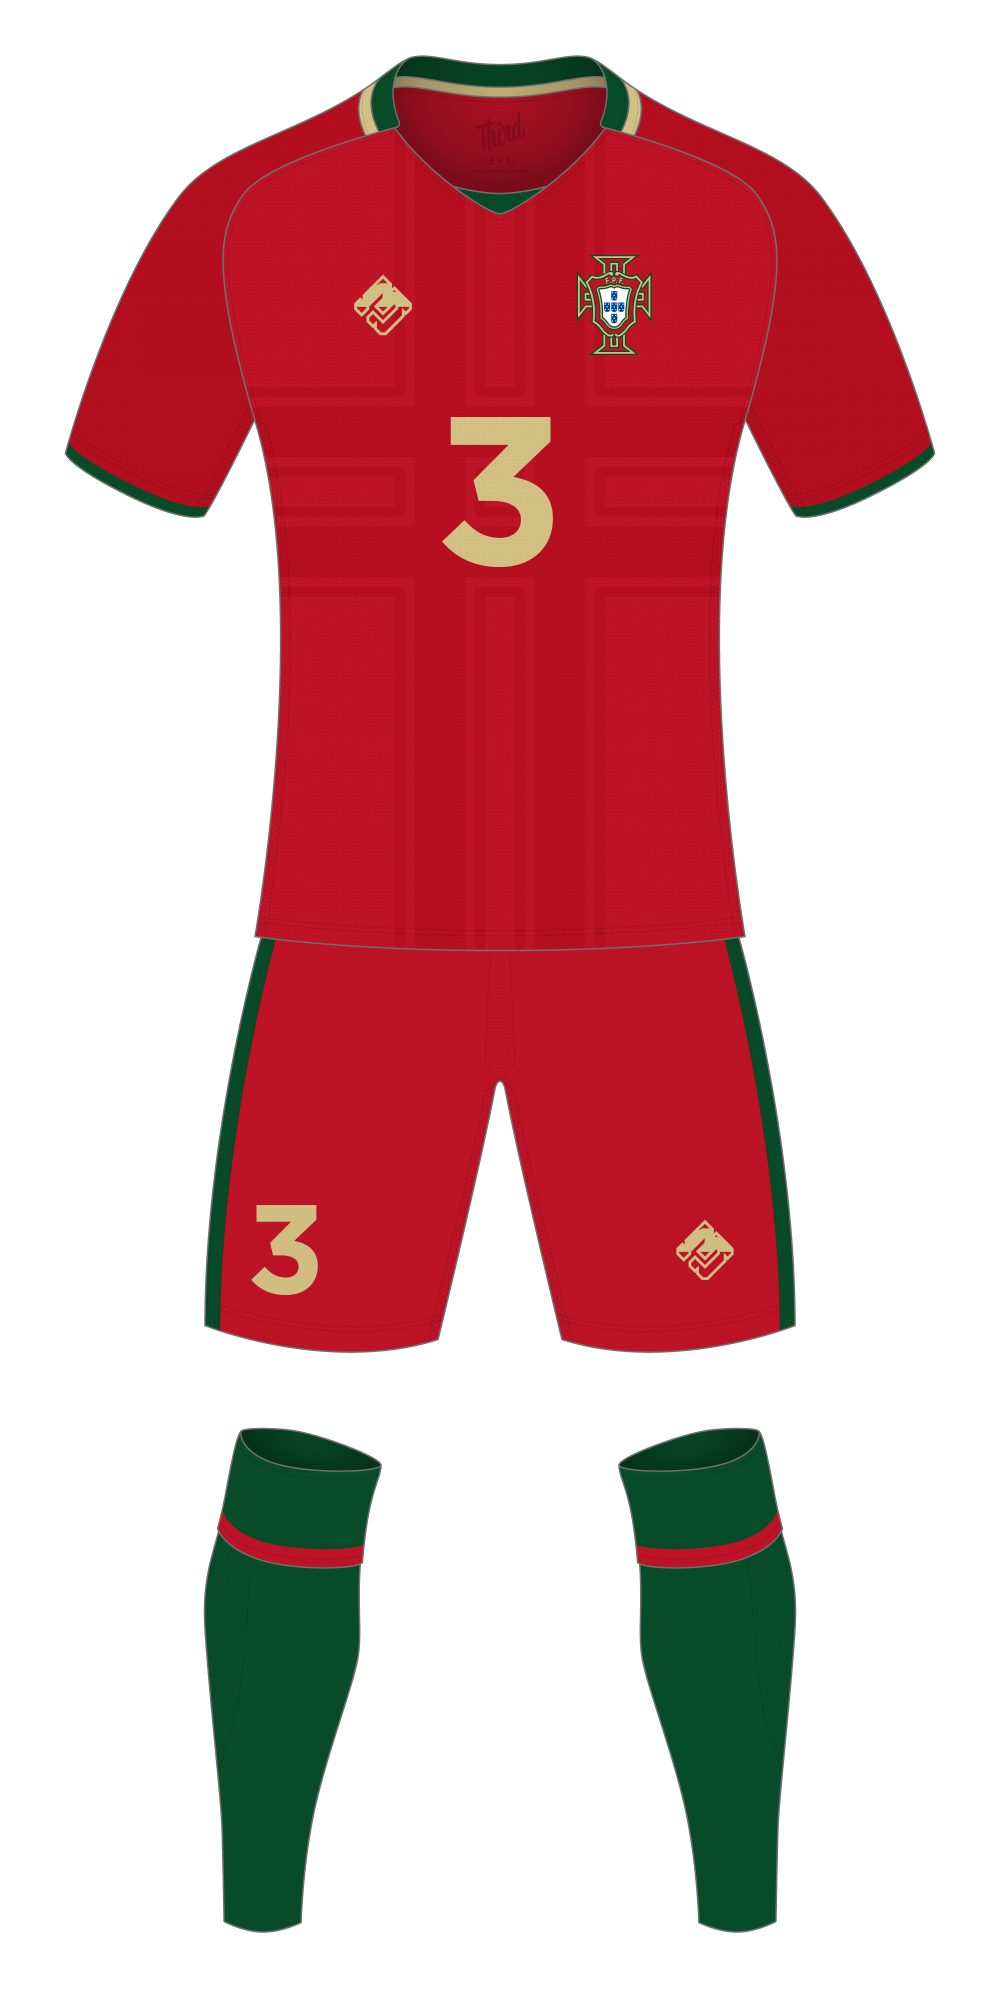 Portugal World Cup 2018 concept